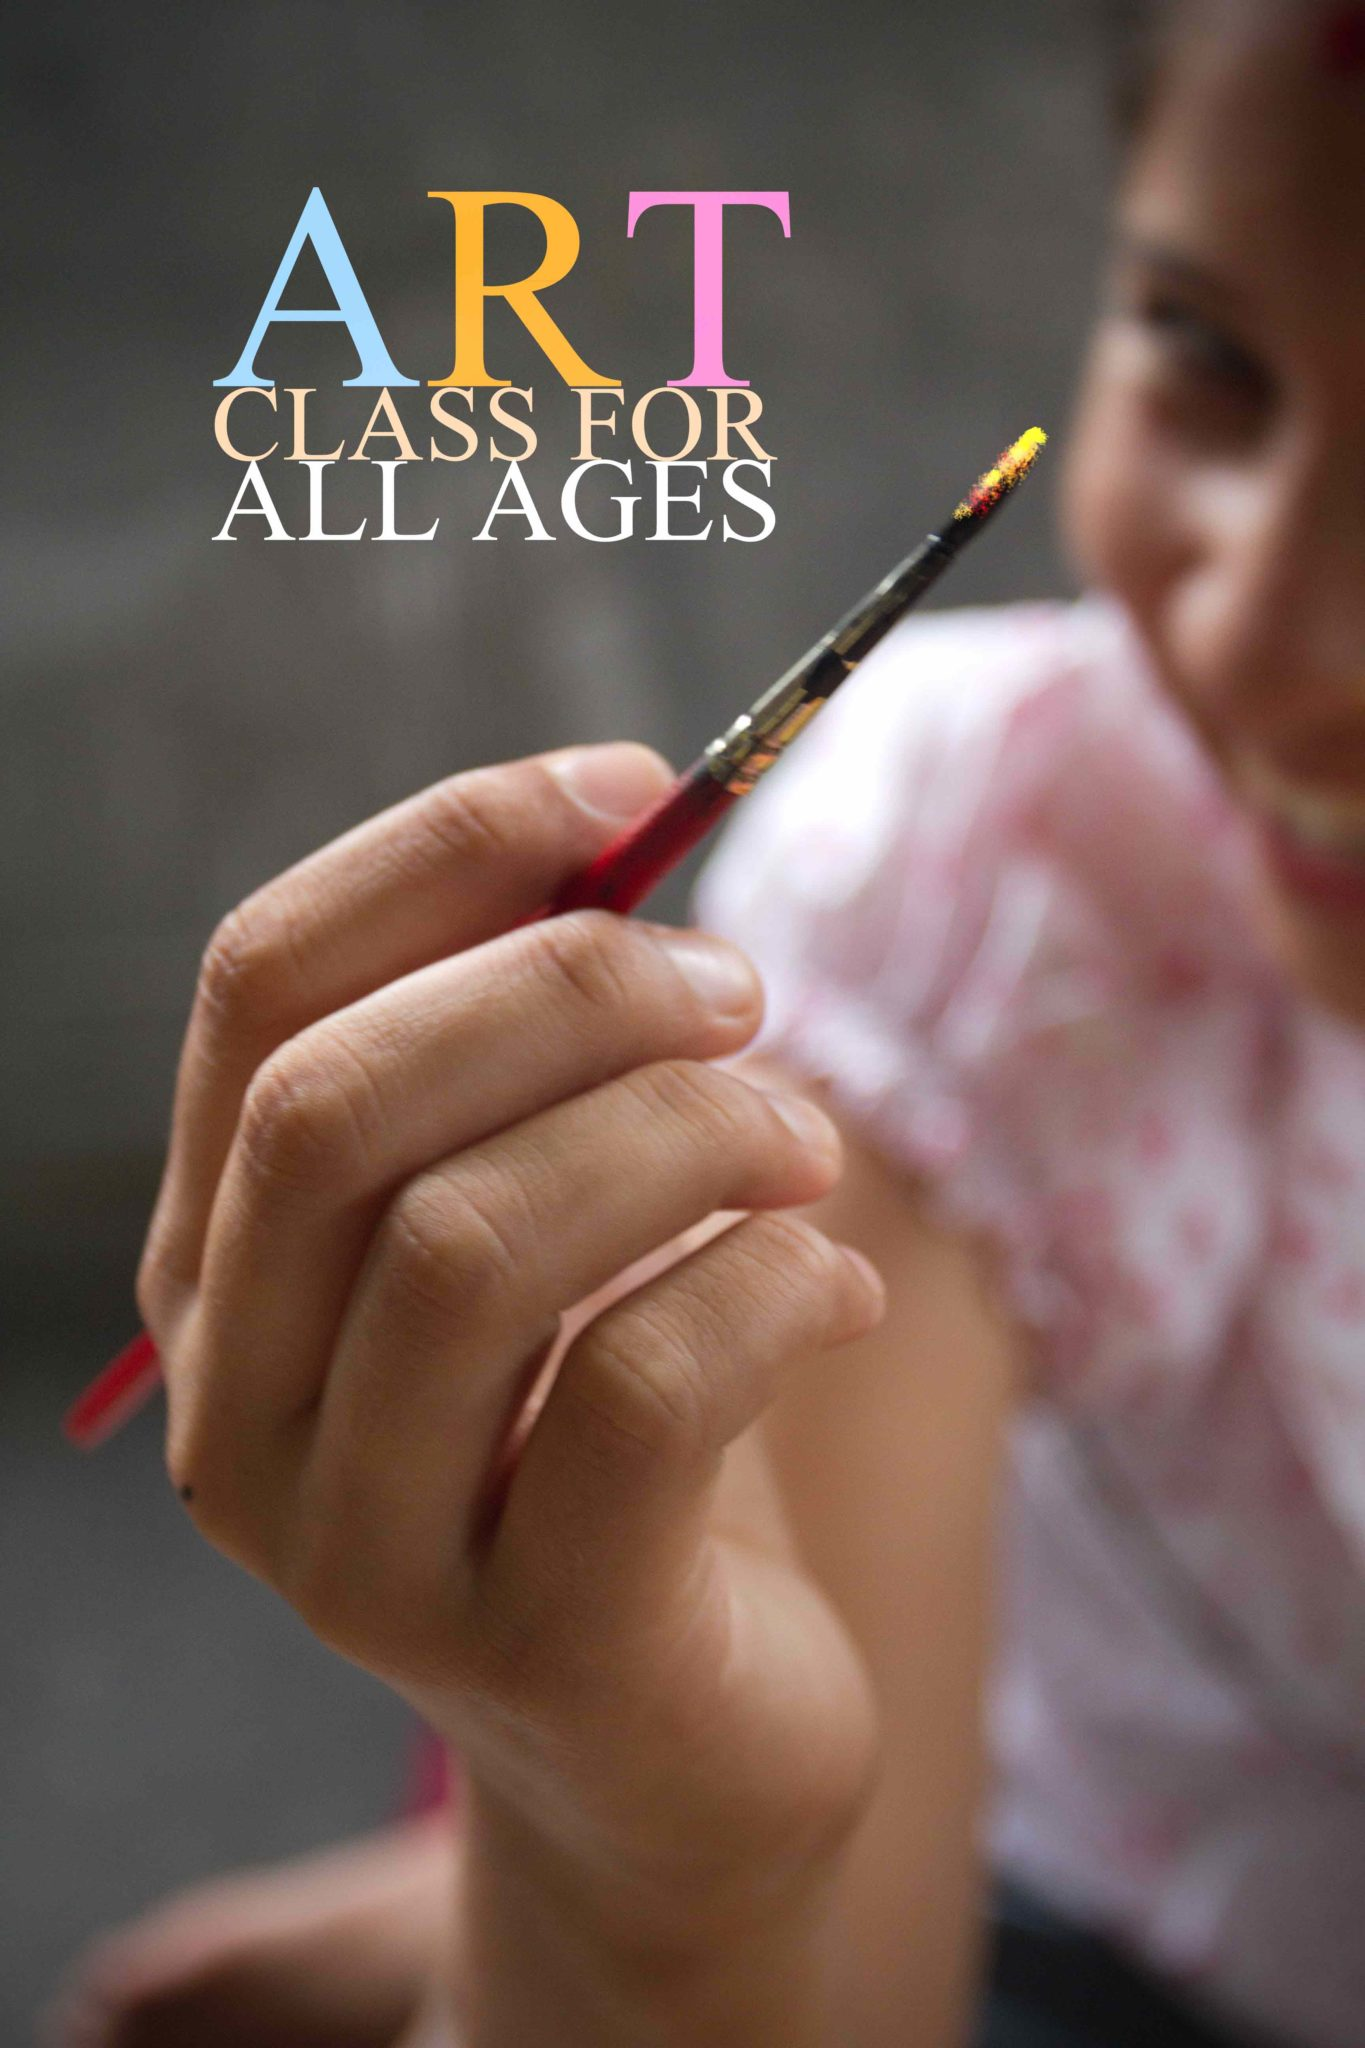 art-class-for-all-ages